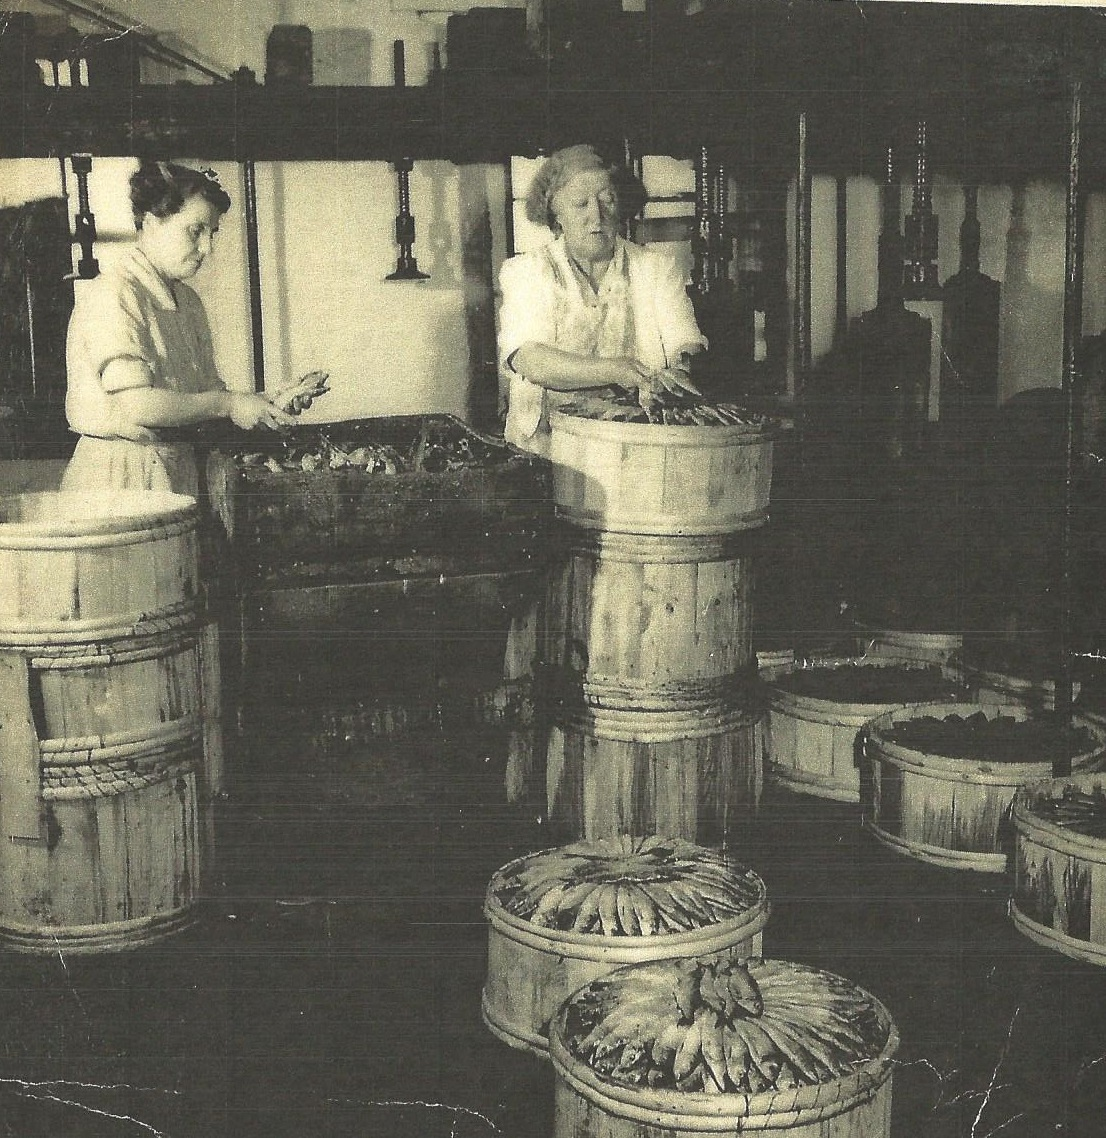 Sardines being packed in the Old Sardine Factory